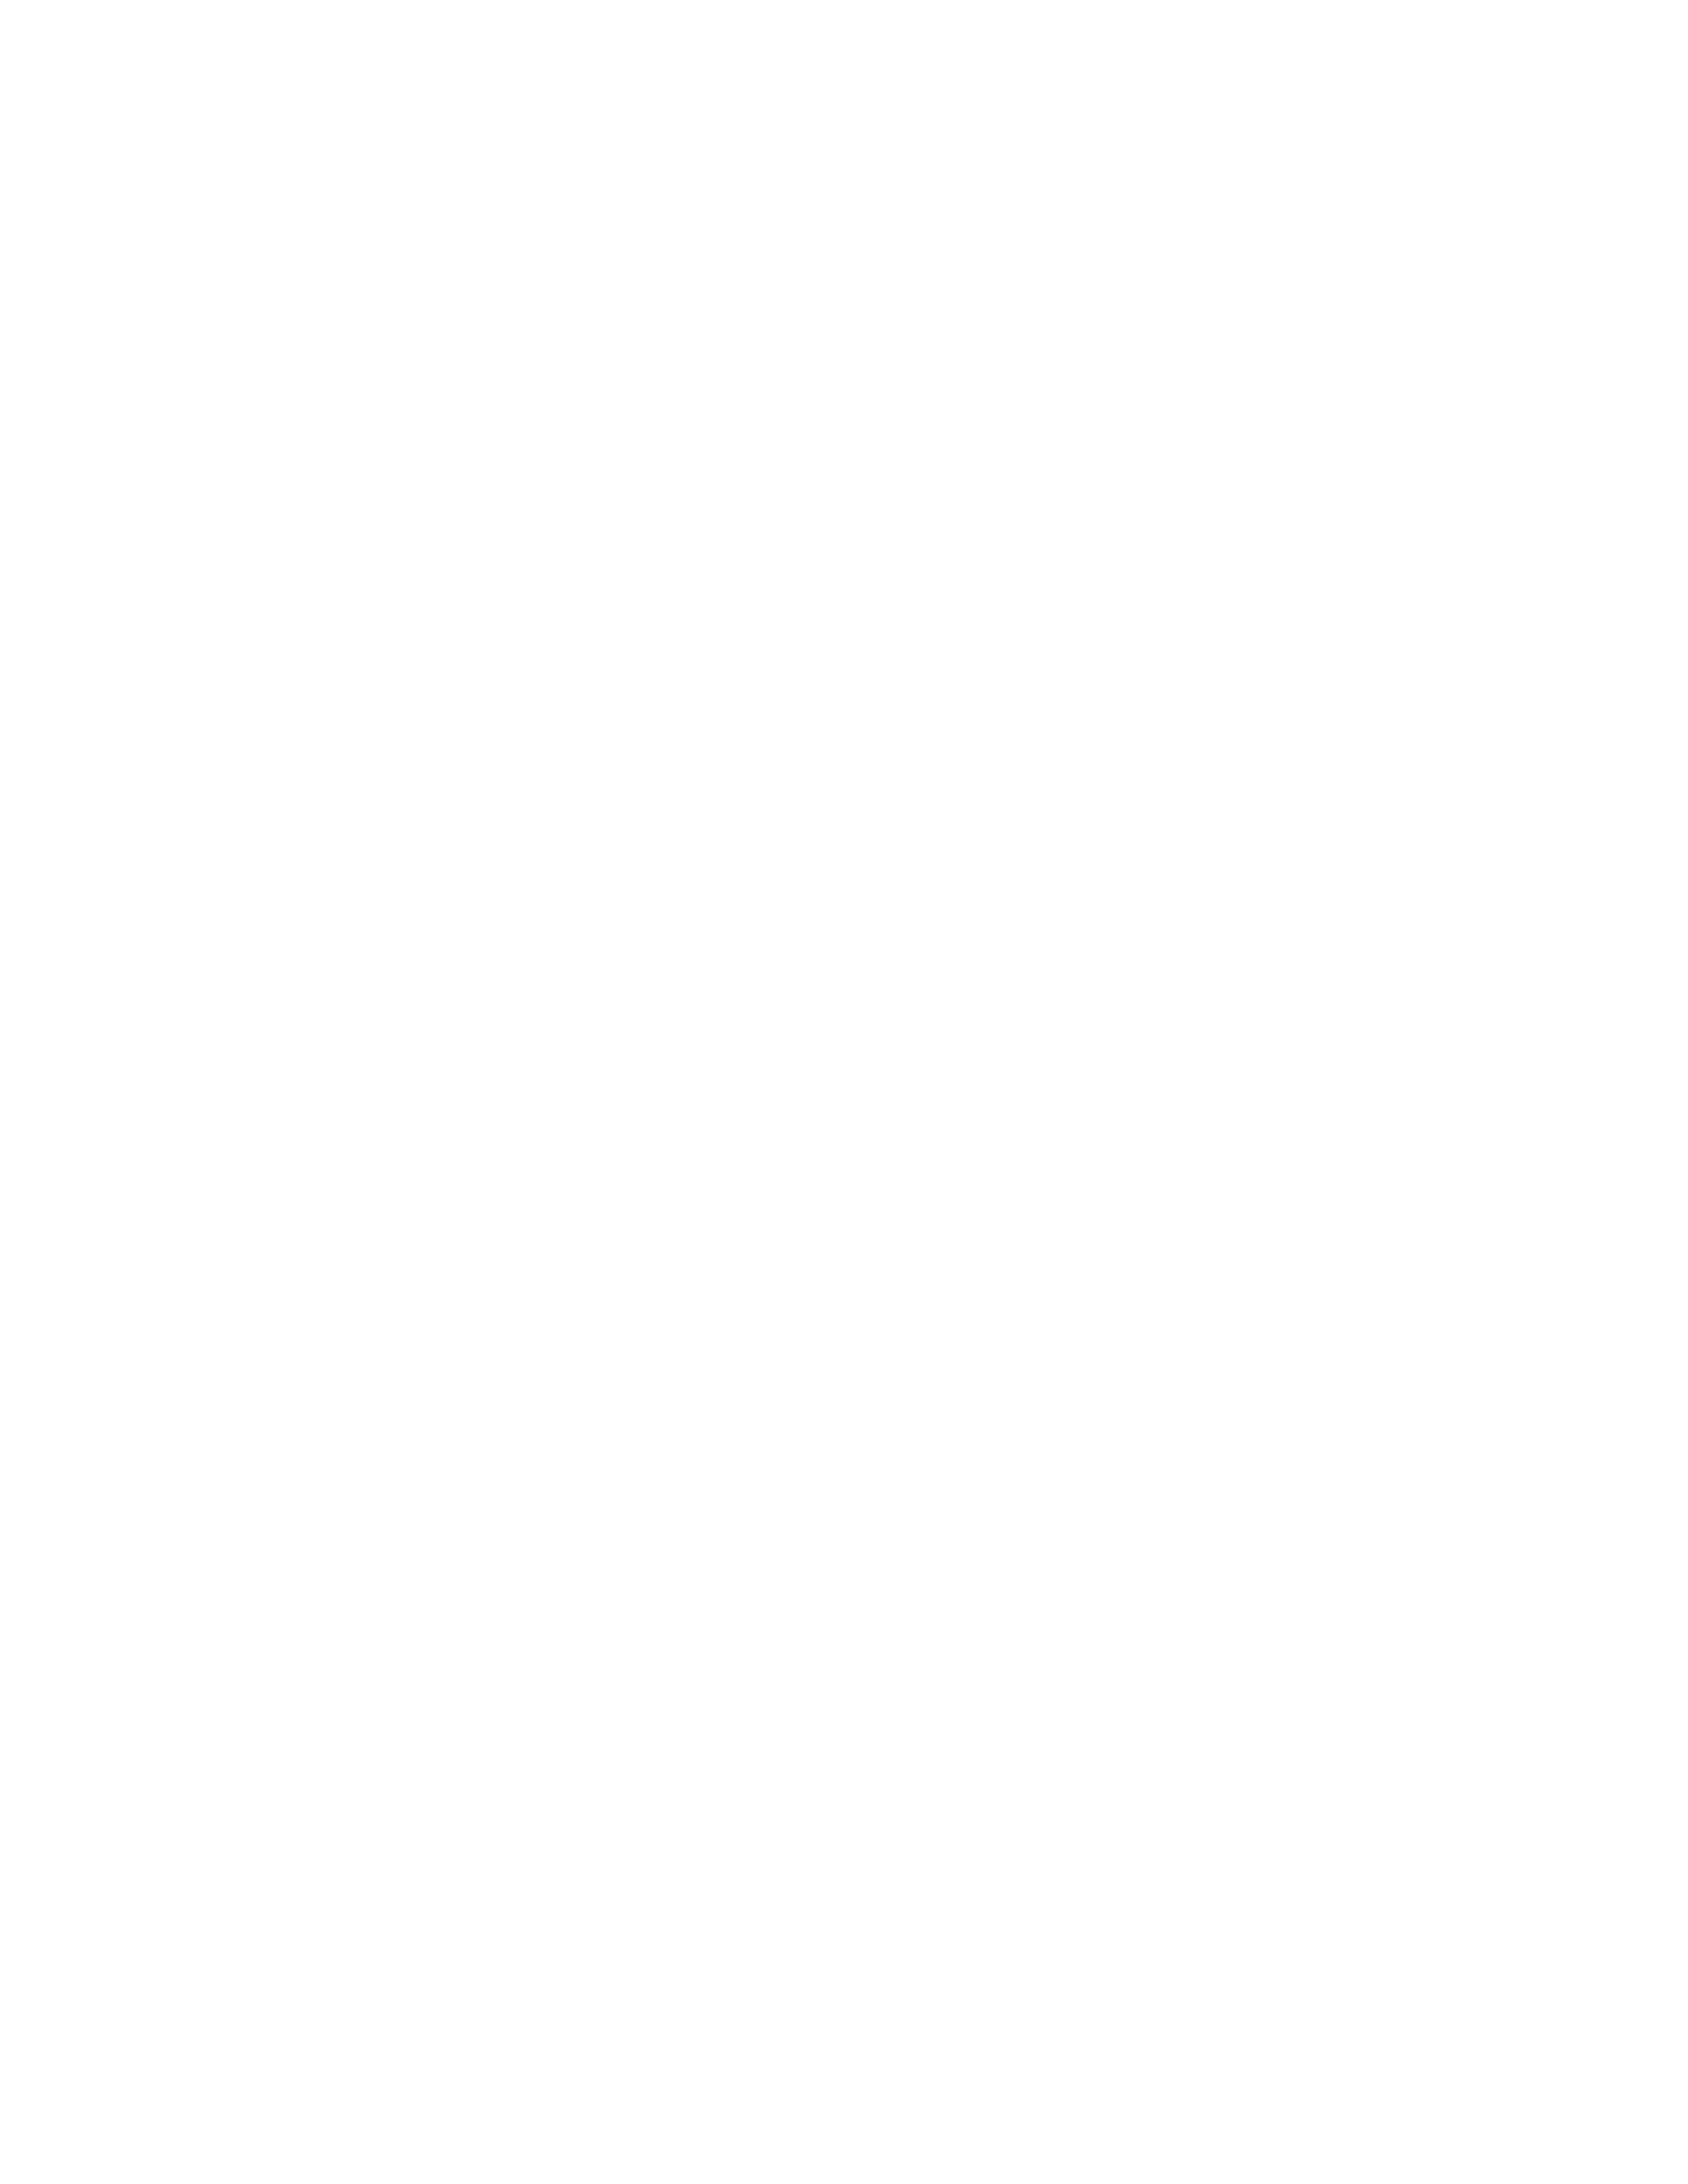 FINAL Cowboy Auctioneer Logo (transparent background)-01 copy.png